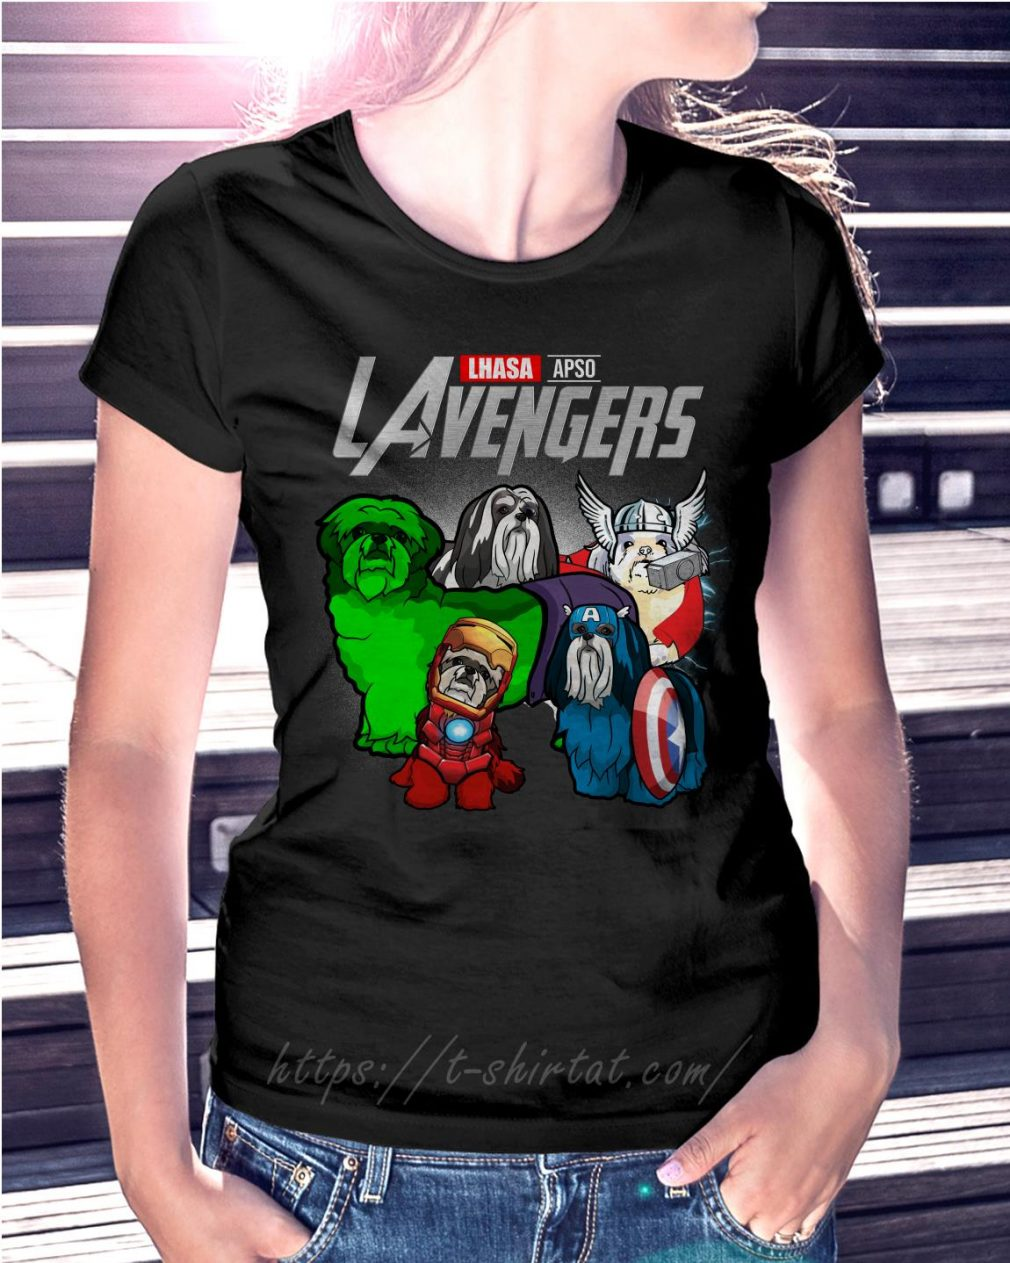 Marvel Lhasa Apso LAvengers Ladies Tee